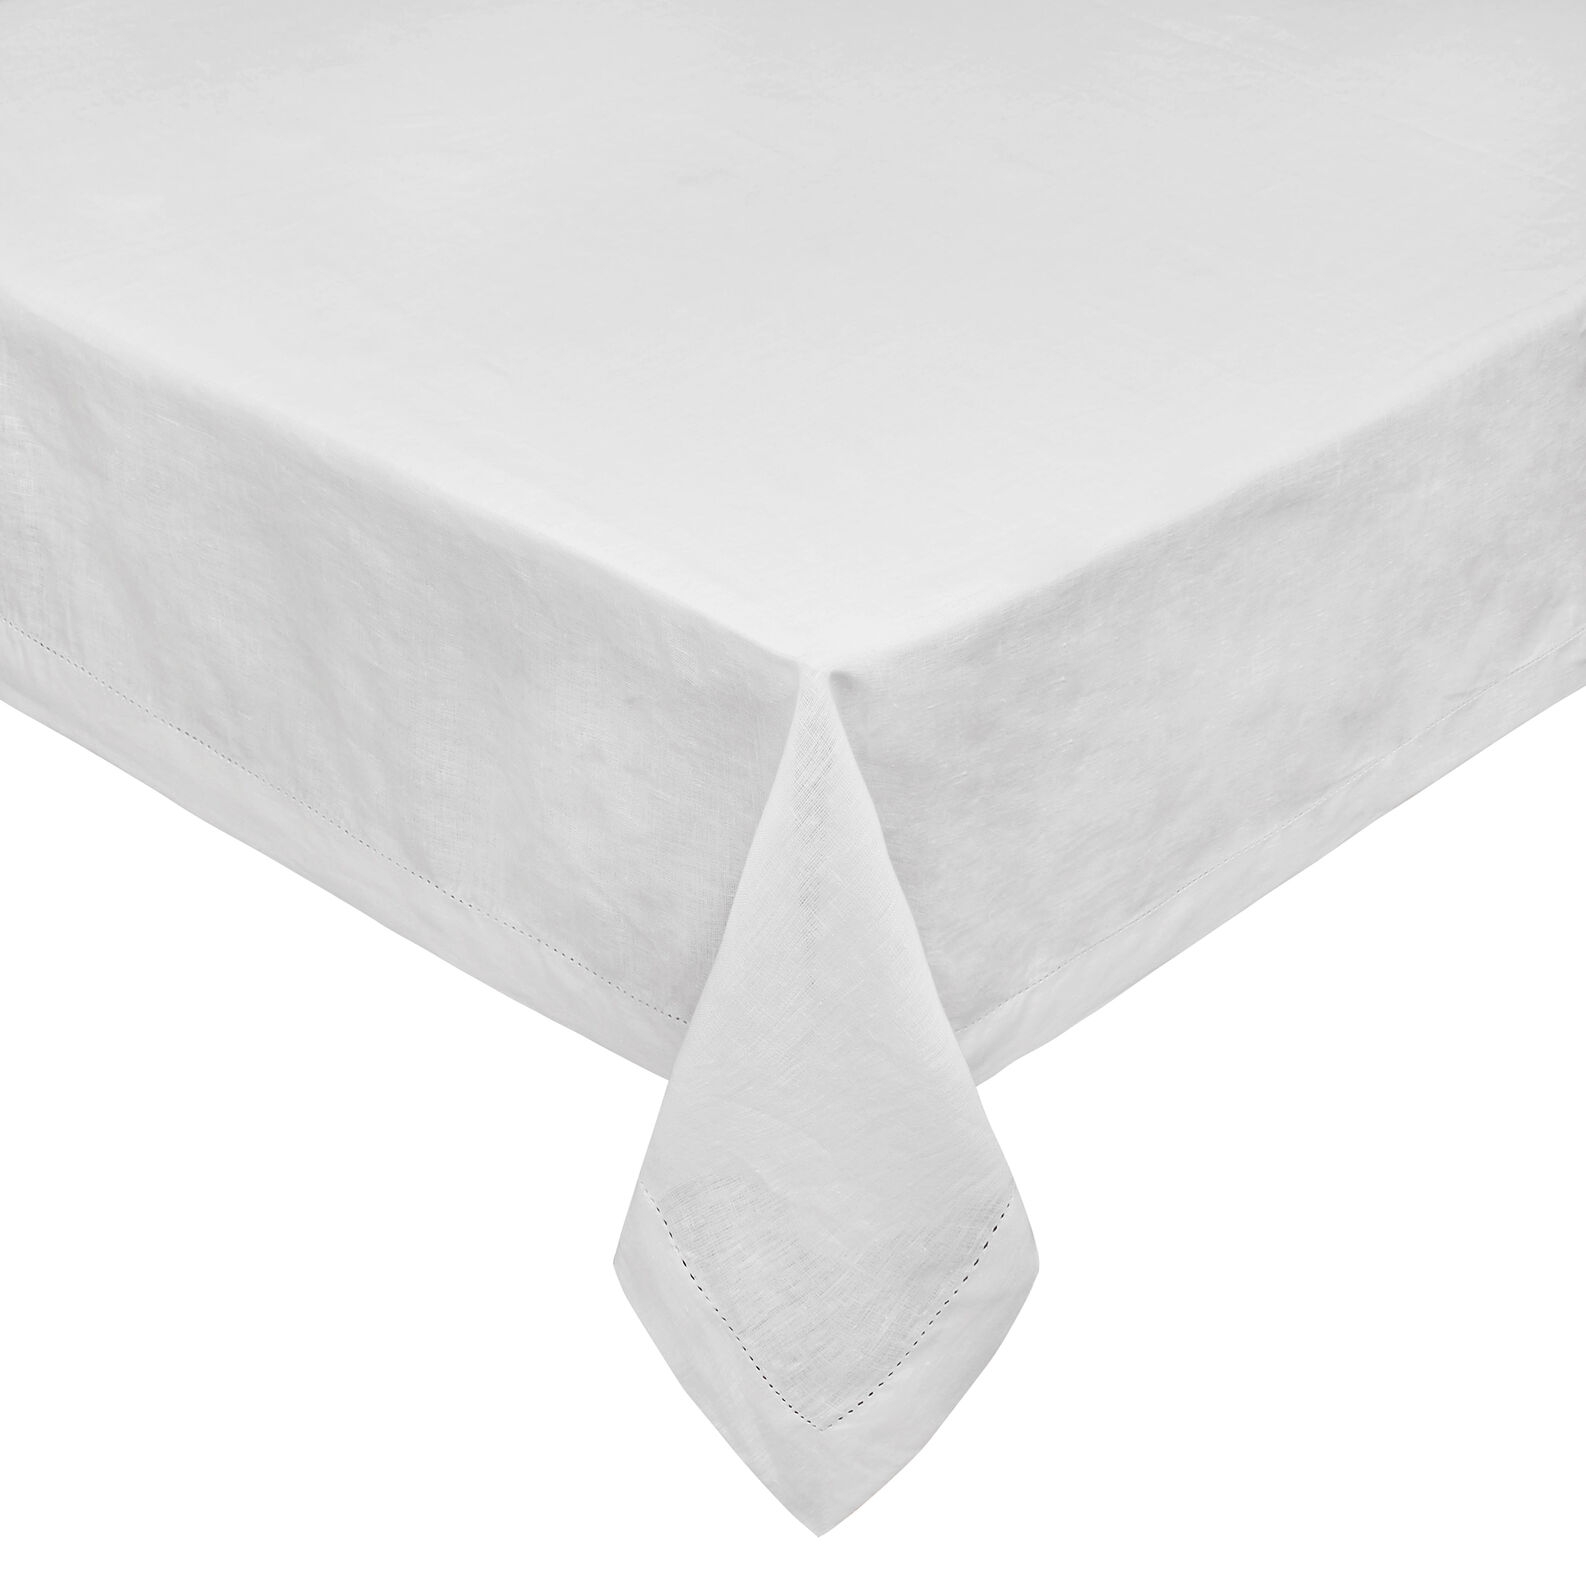 100% linen table cloth with whitework embroidery